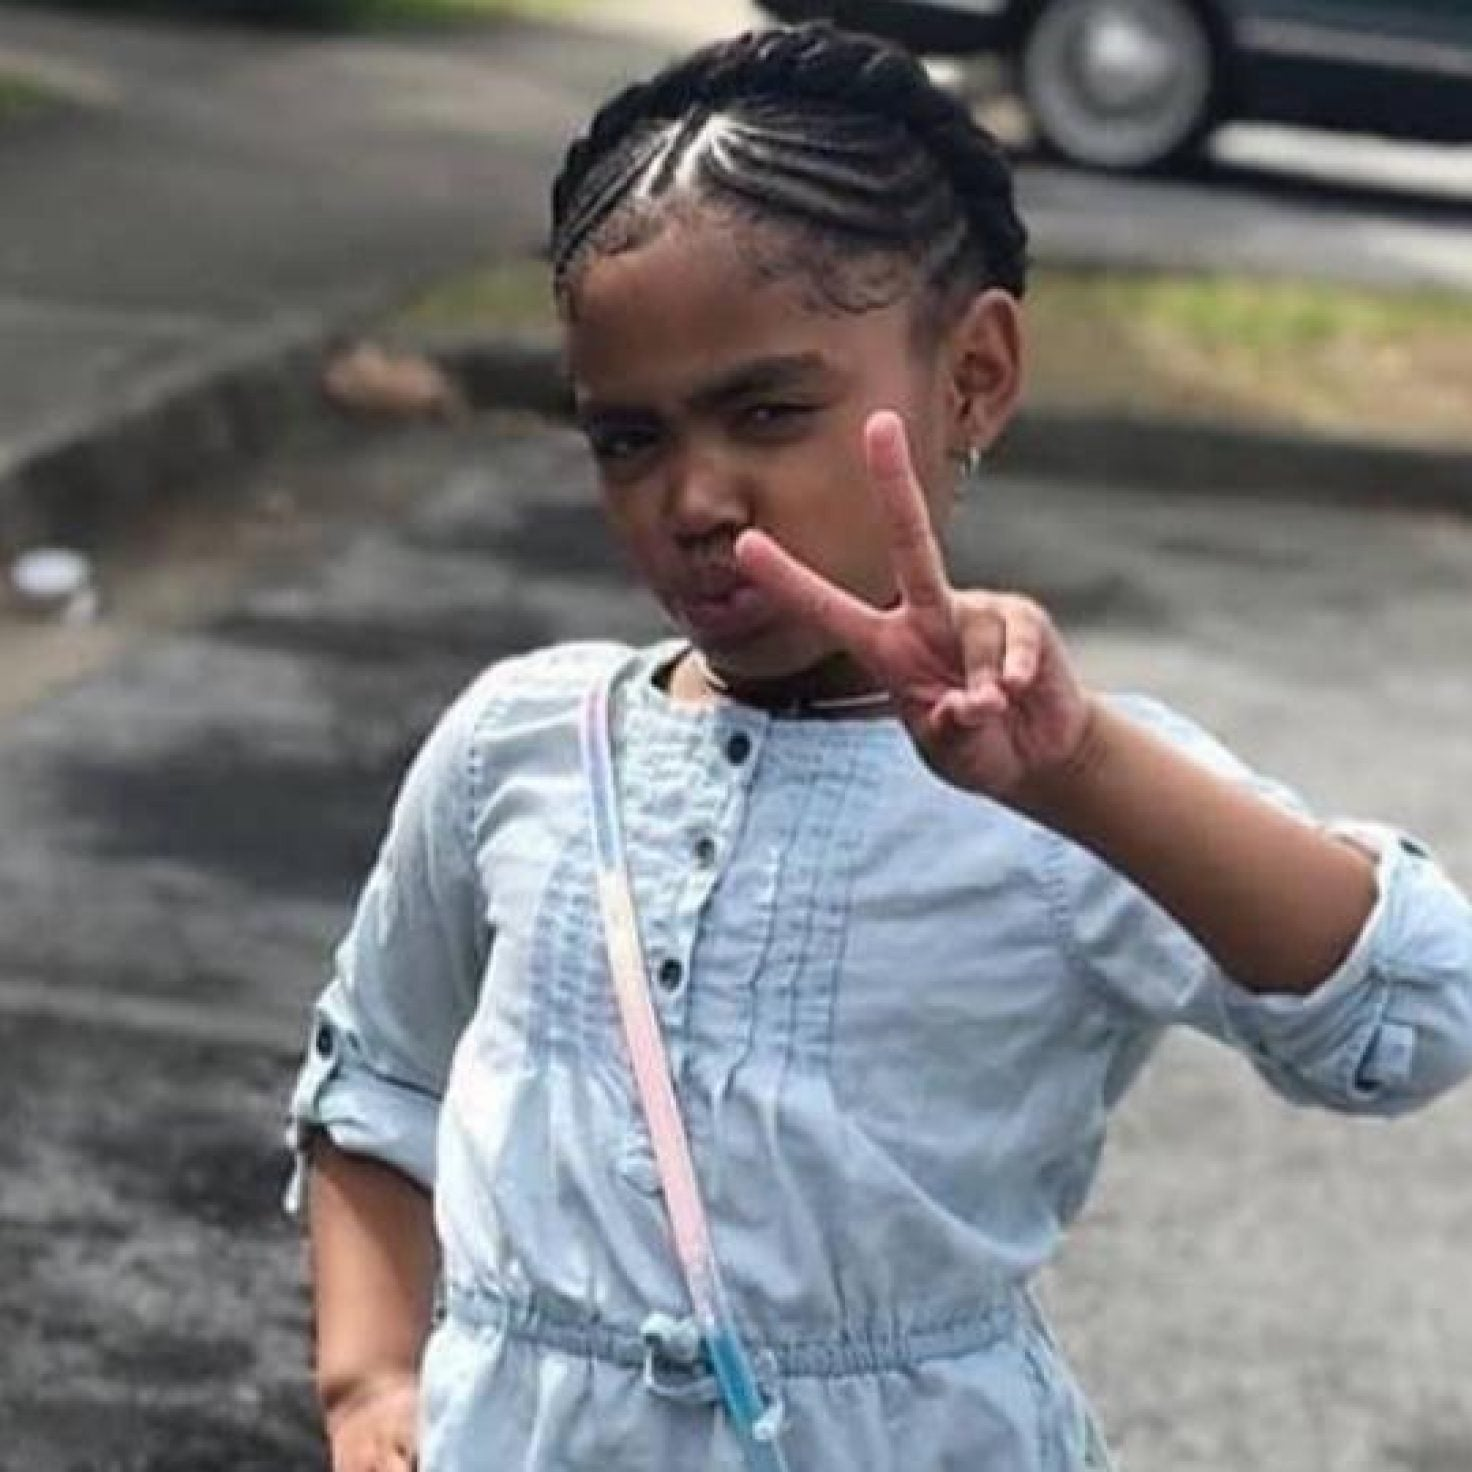 Reward Offered For Information In Shooting Death Of 8-Year-Old Atlanta Girl